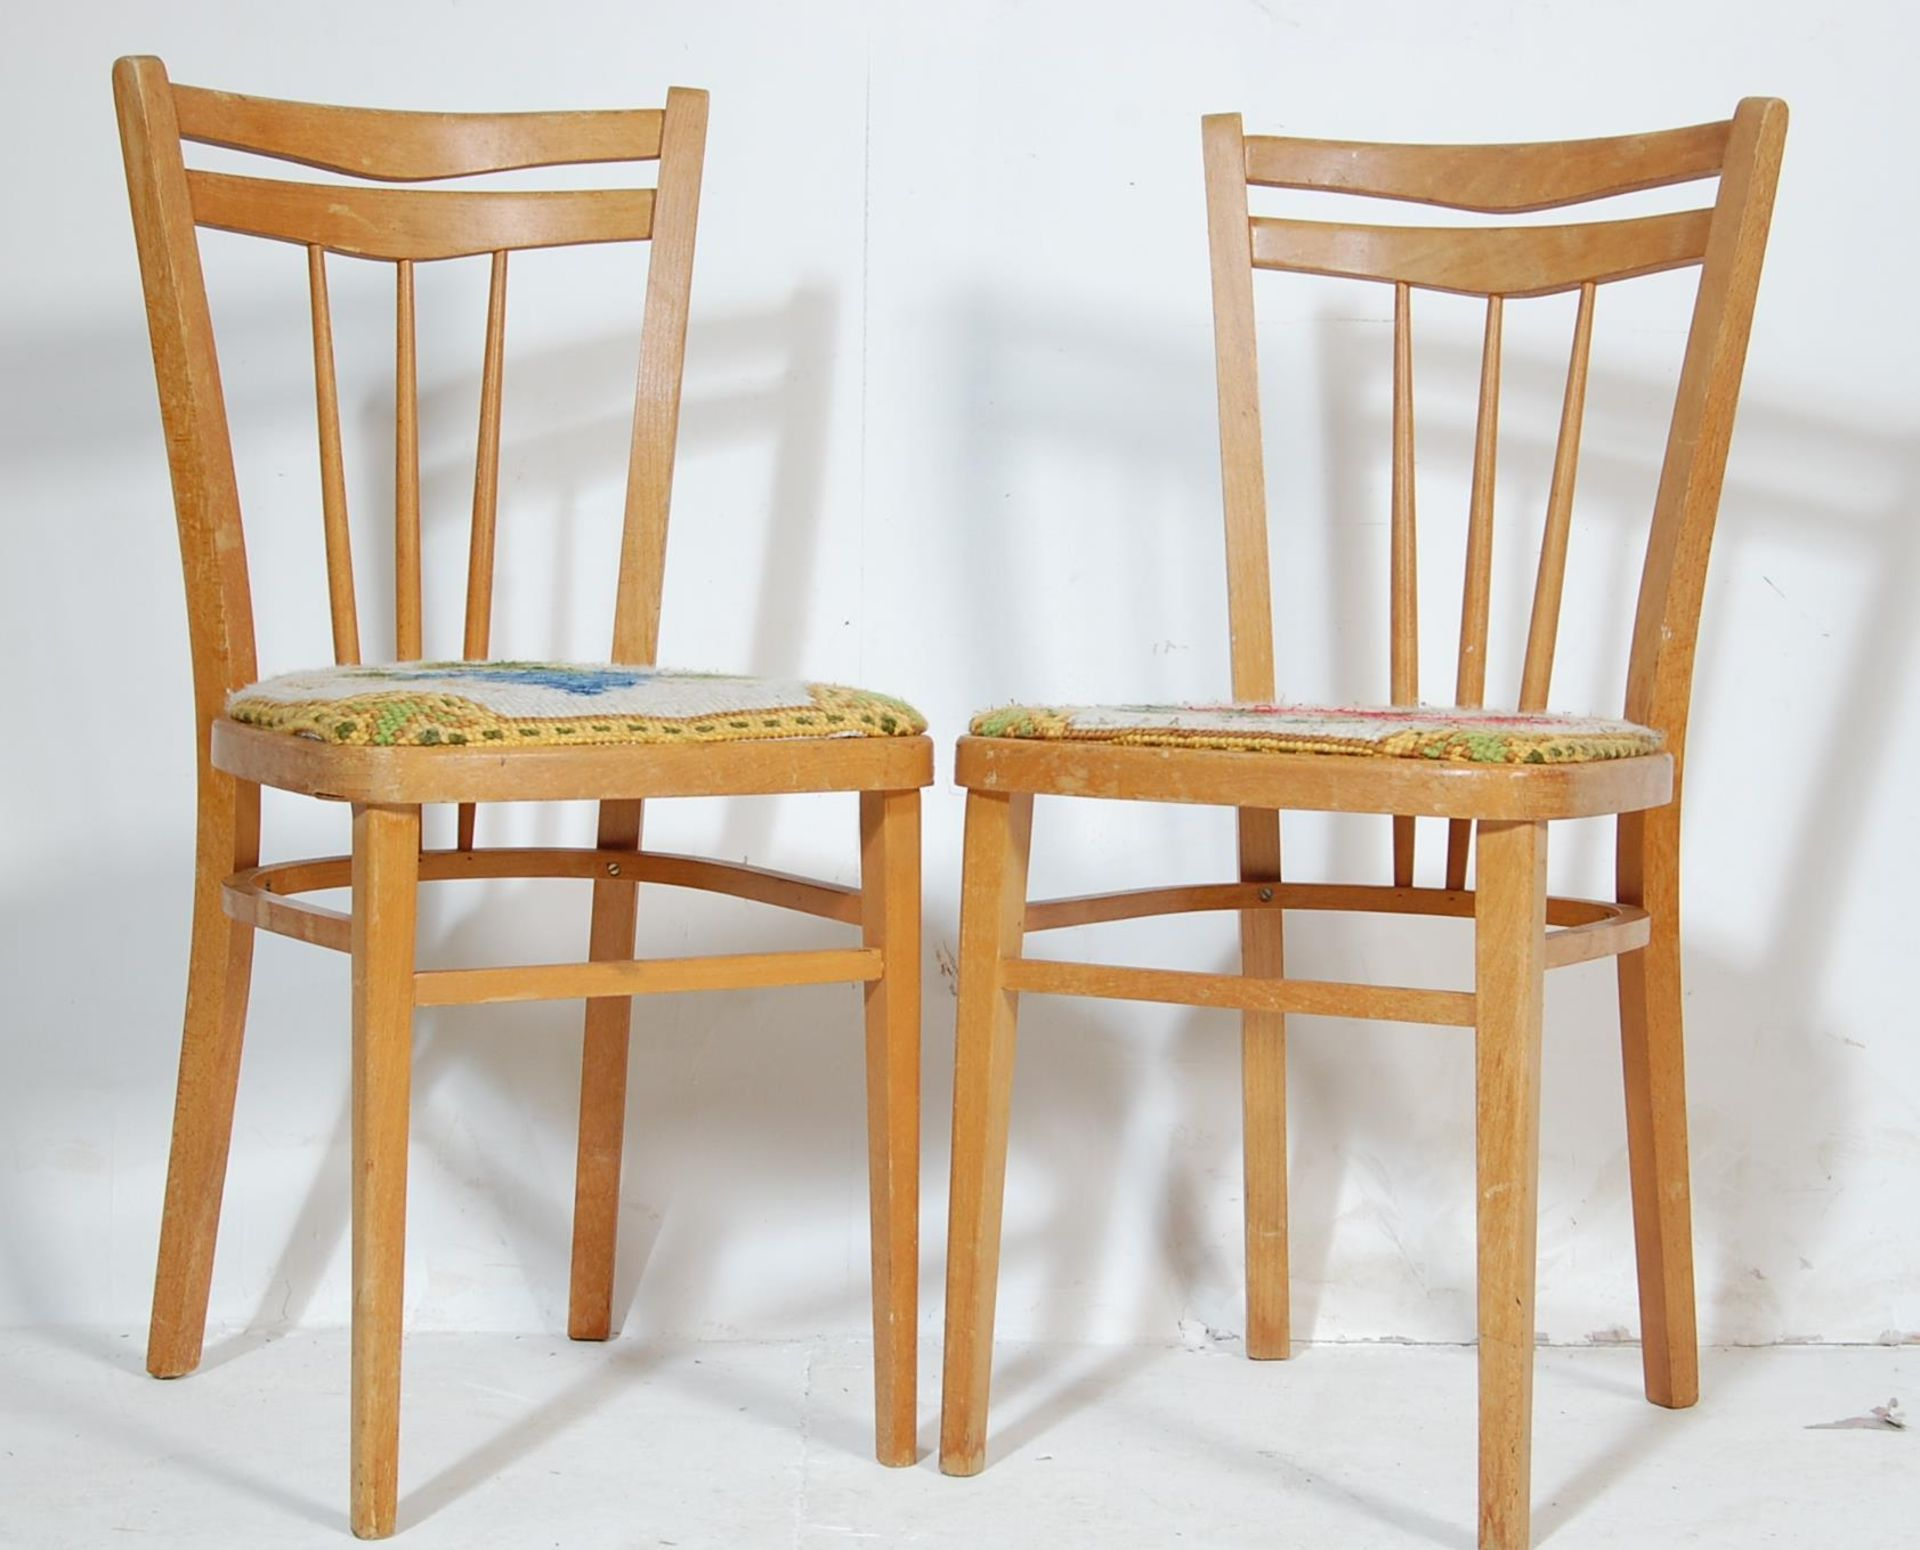 FIVE RETRO 20TH CENTURY DINING CHAIRS / KITCHEN CHAIRS - Image 3 of 5